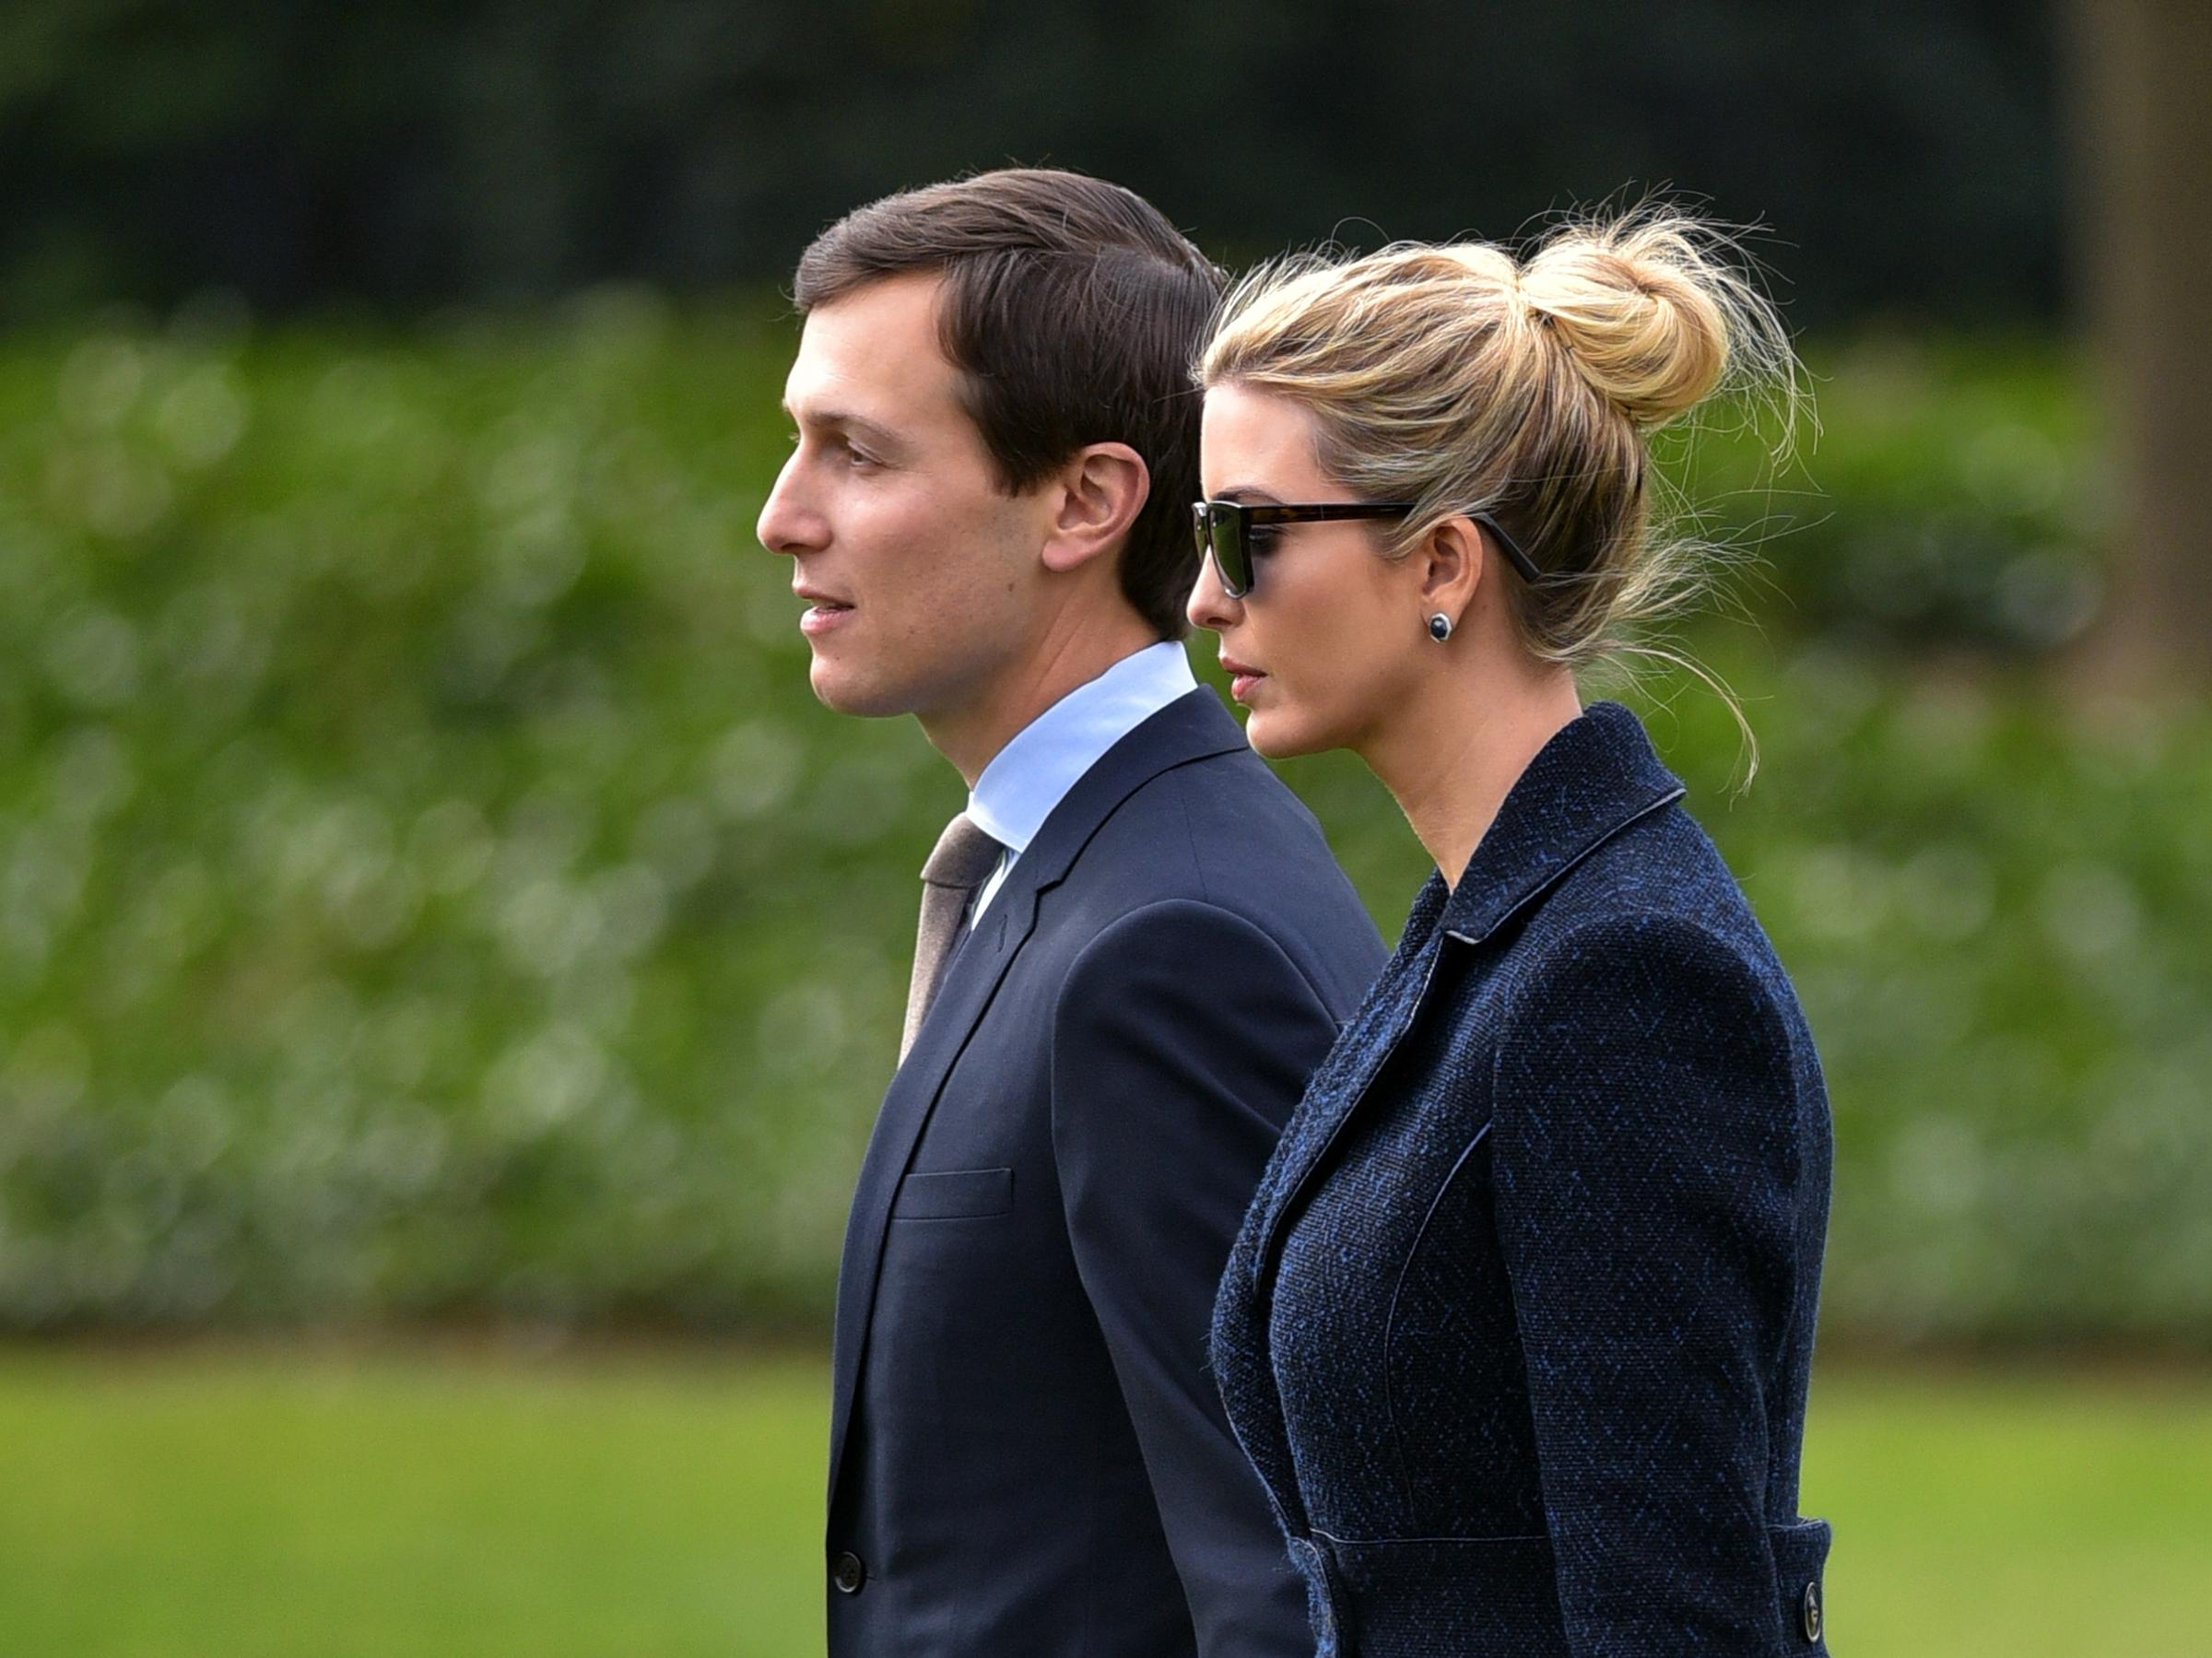 Jared Kushner And Ivanka Trump to divest some assets